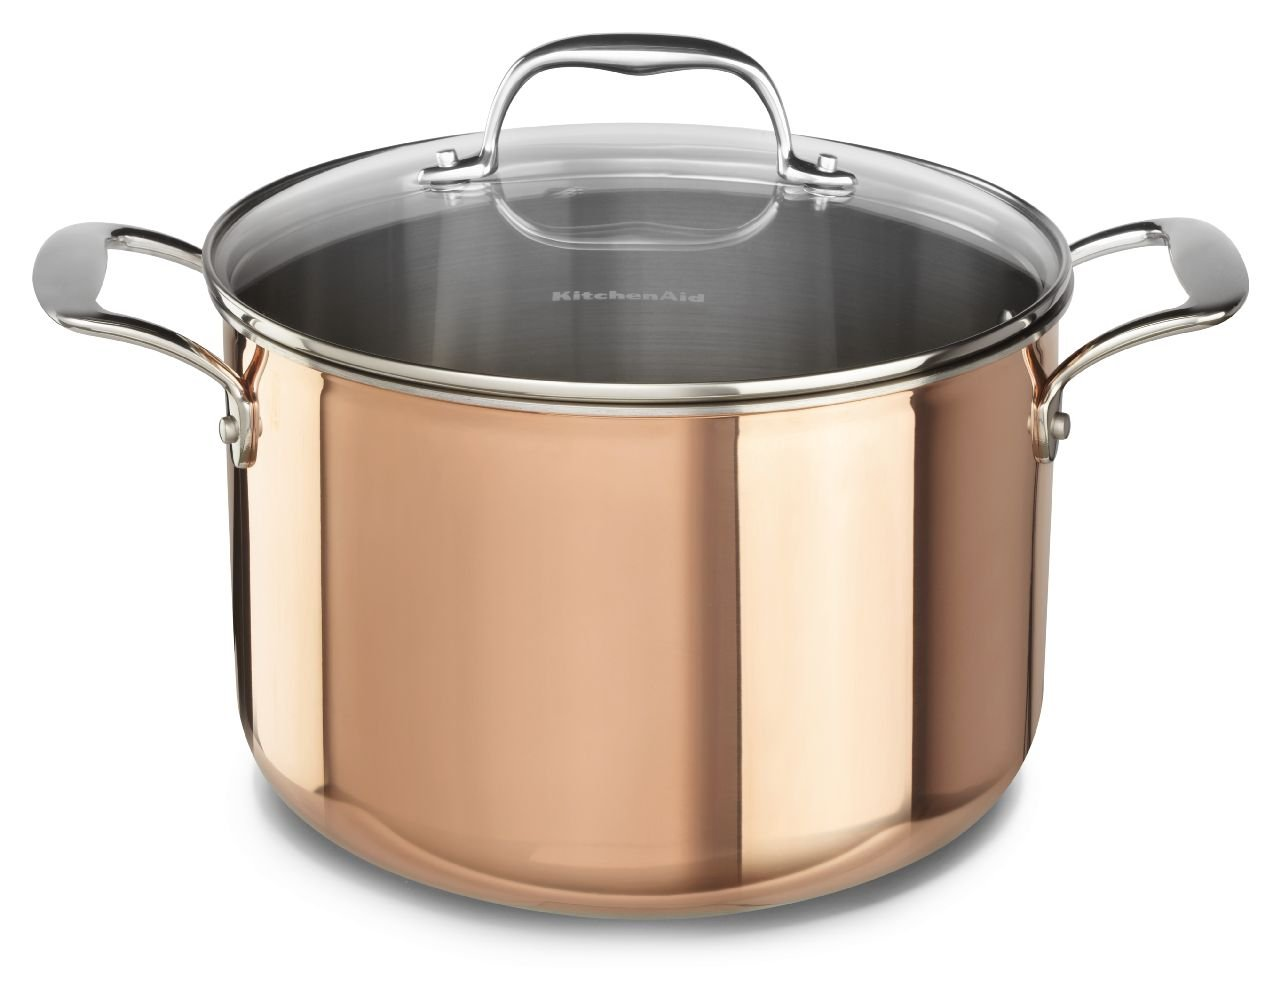 Amazon.com: KitchenAid KCP30PLCP Tri-Ply Copper 3.0-Quart Saucepan ...